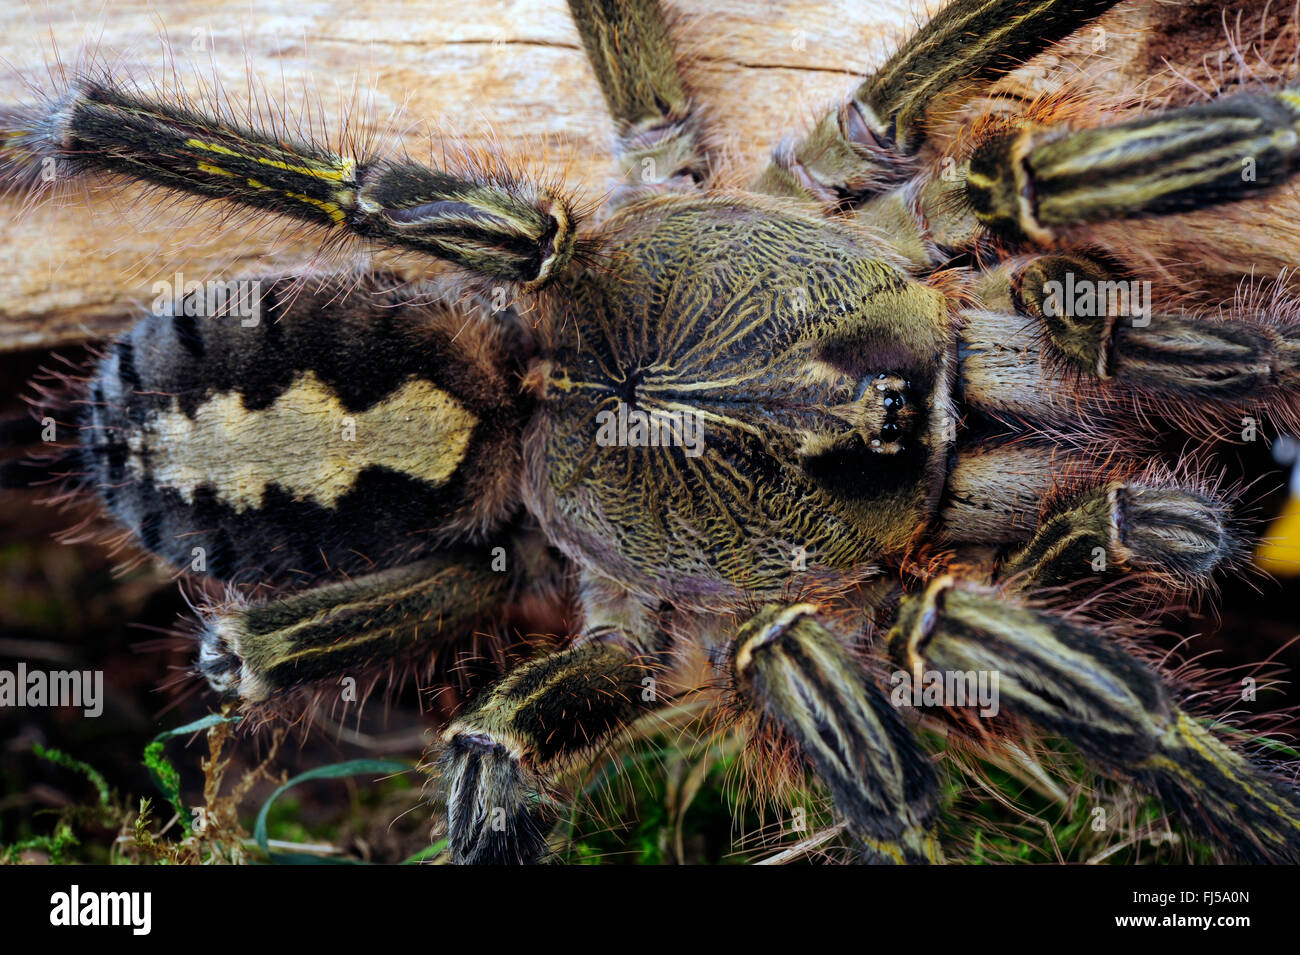 Redslate ornamental tarantula (Poecilotheria rufilata), top view, close-up, India - Stock Image